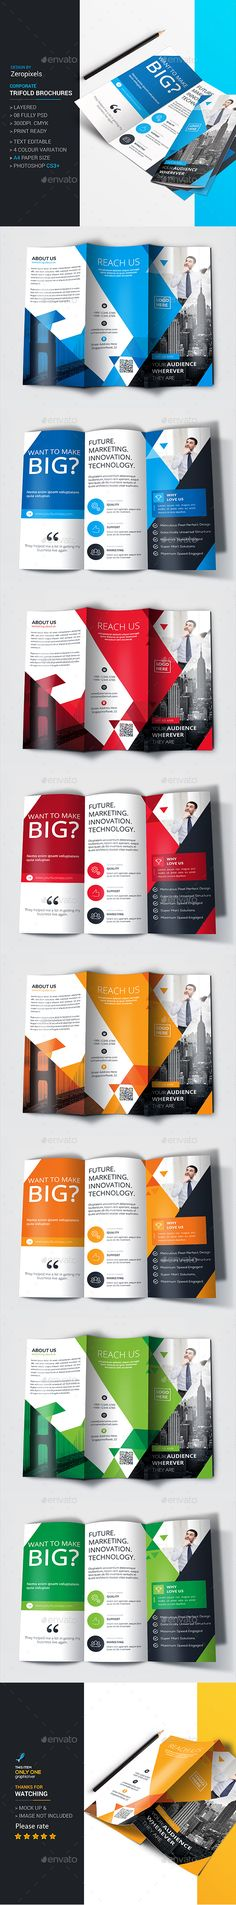 27 best trifold board images